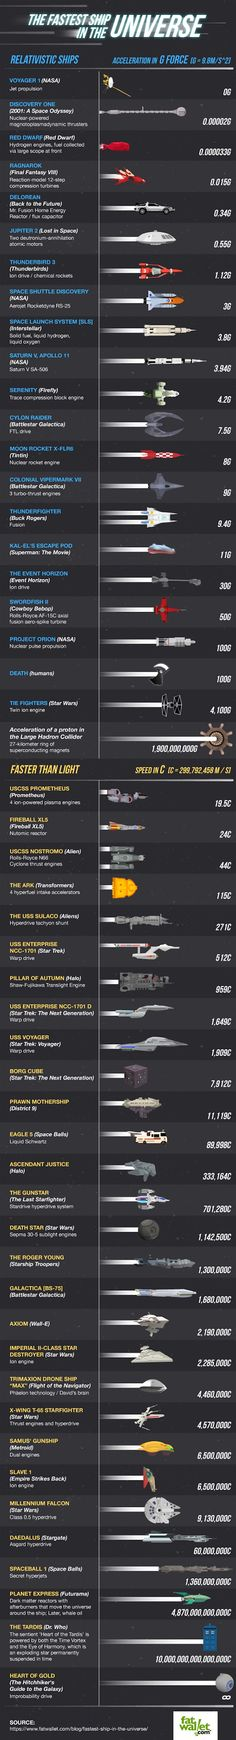 The Fastest Ships in the Universe [Infographic]